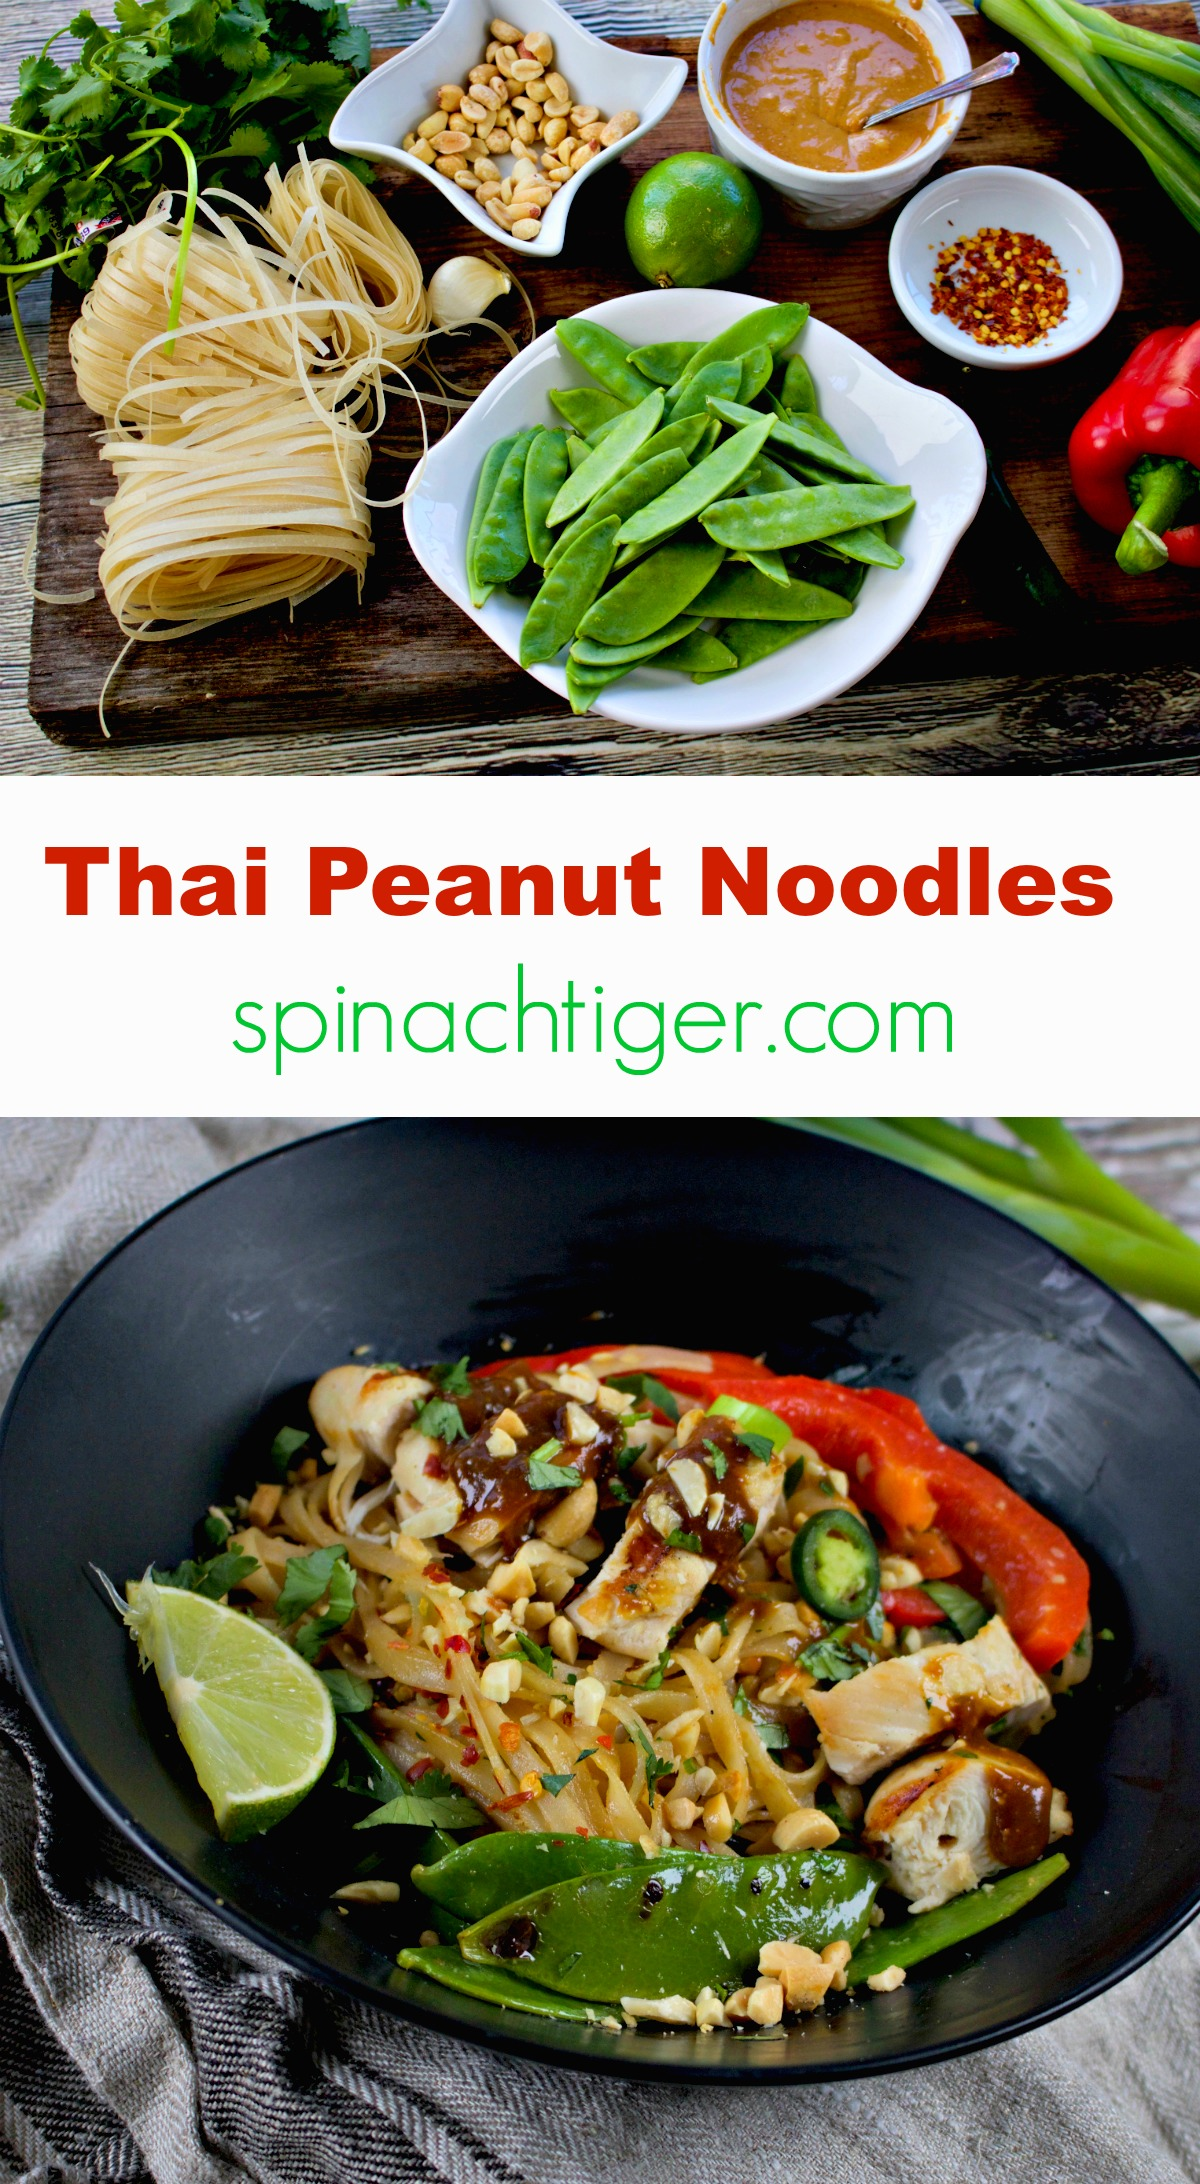 Best Thai Peanut Noodles with Grilled chicken Skewers from Spinach Tiger